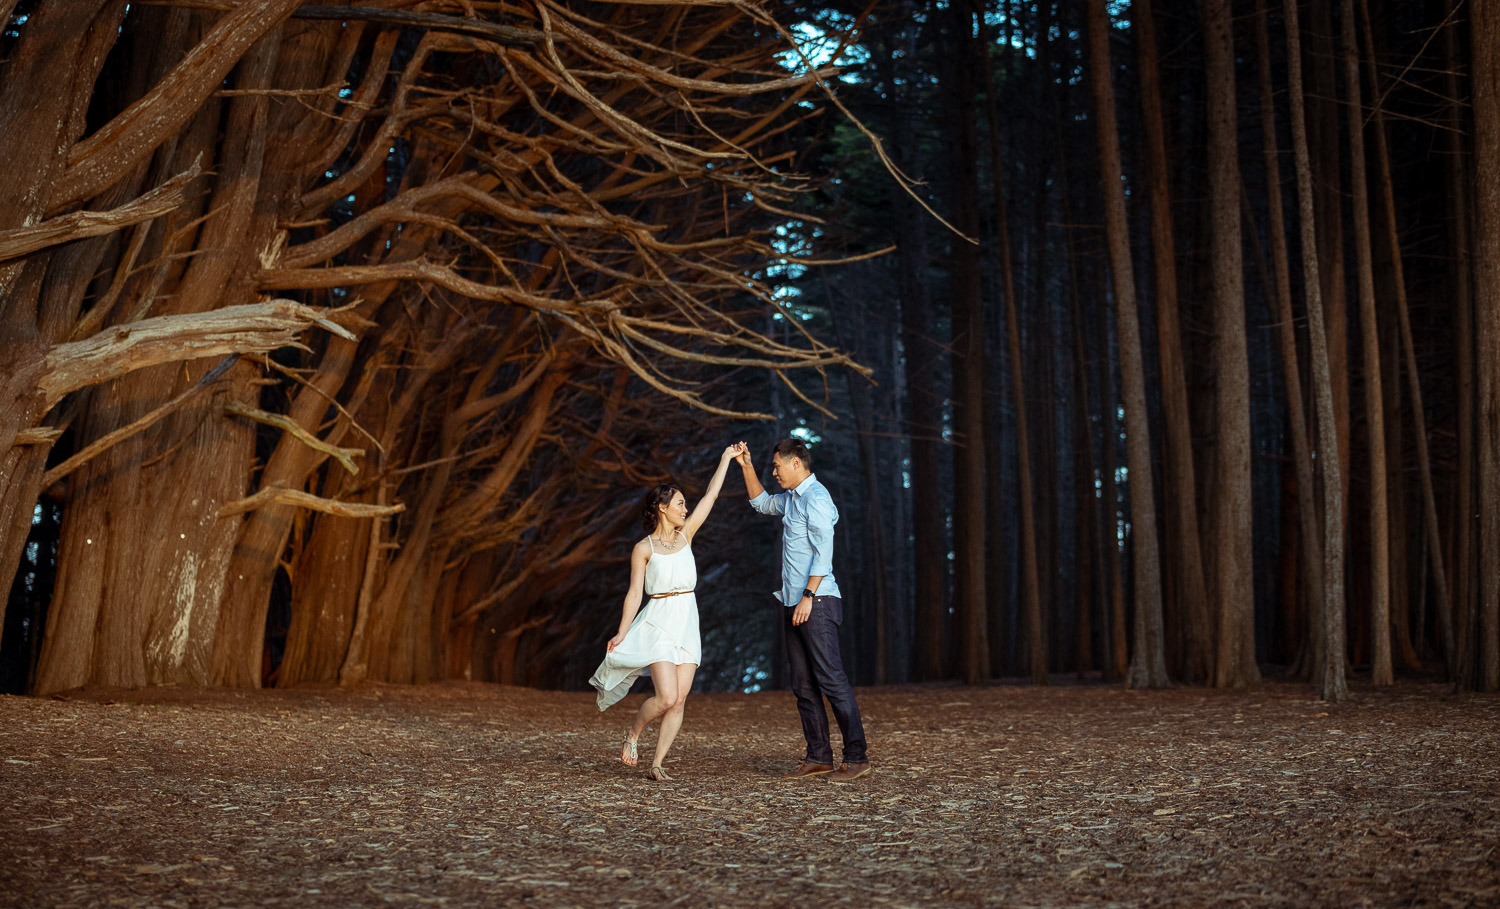 Sean & Gefflin Engagement Shoot at The Enchanted Forest